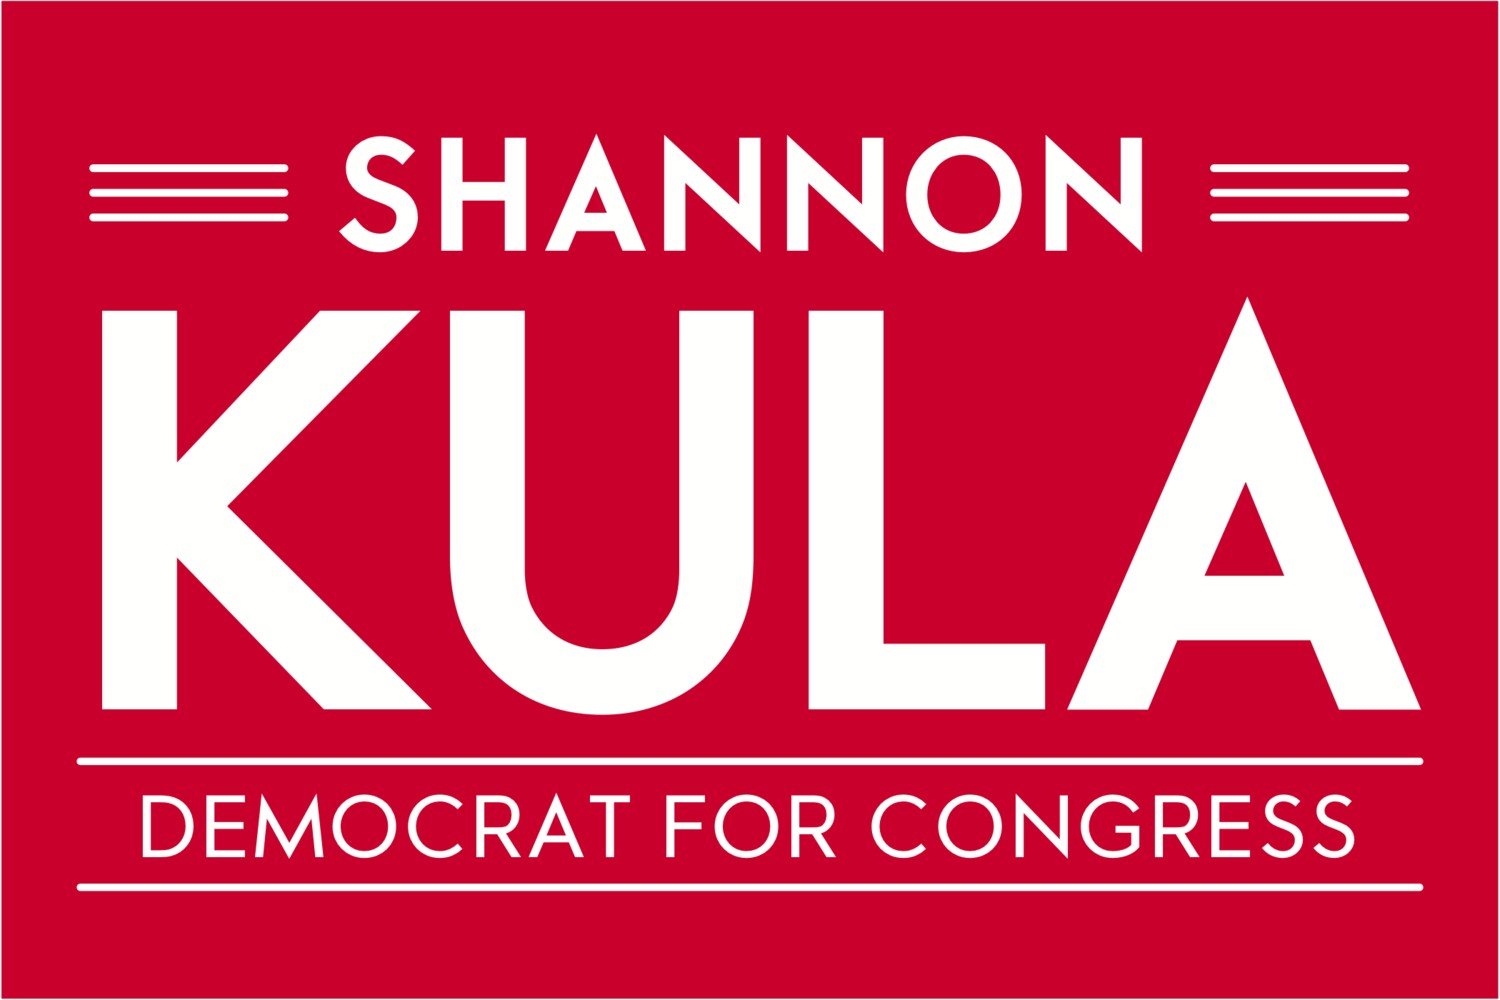 Shannon Kula for Congress